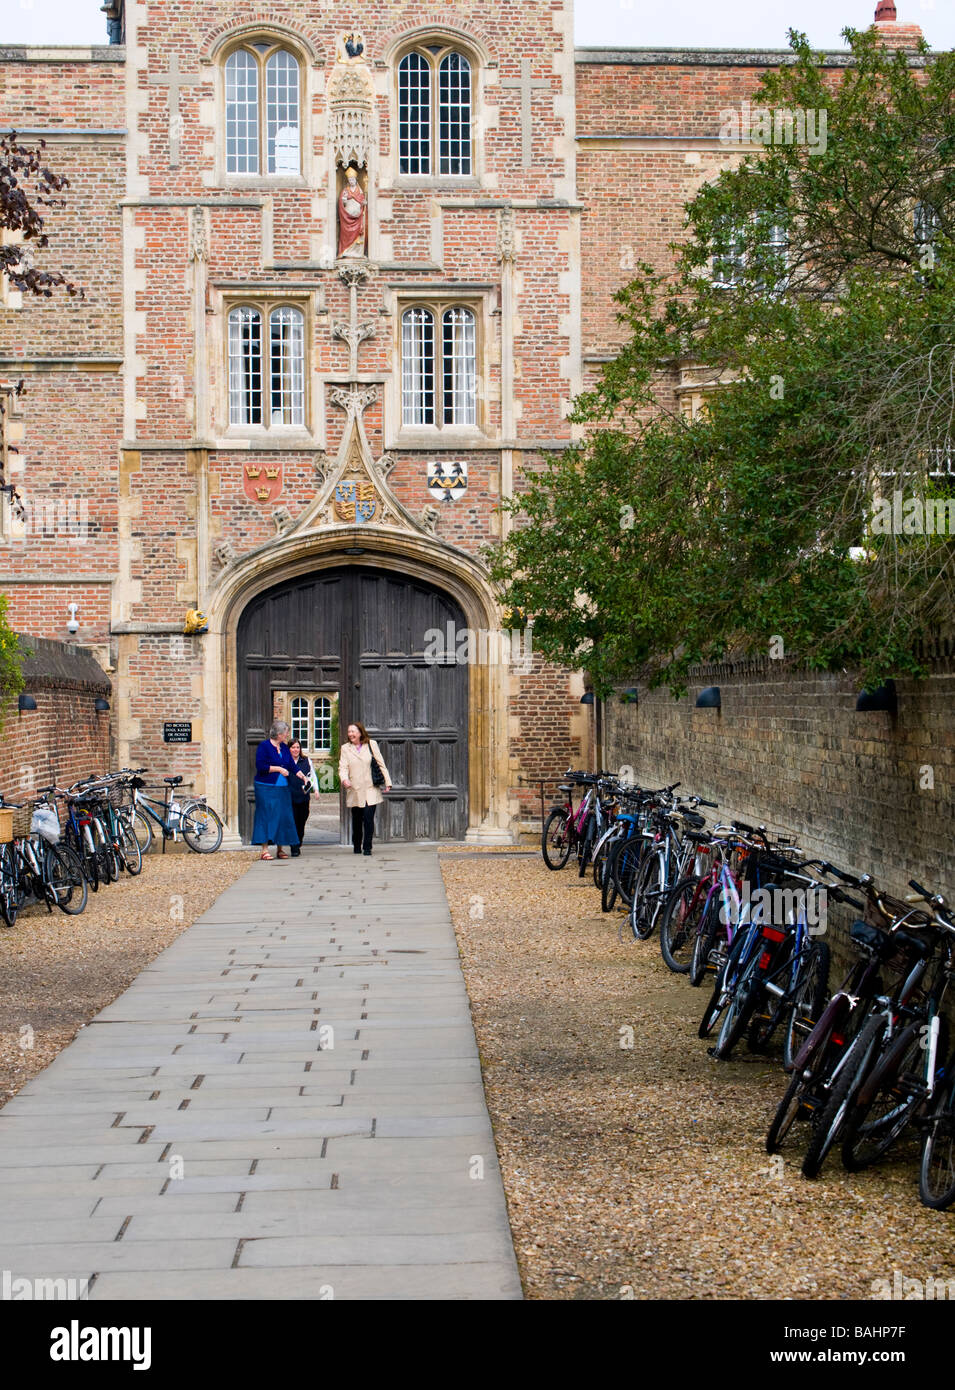 Cambridge, England, UK. Bicycles at entrance to Jesus College - Stock Image